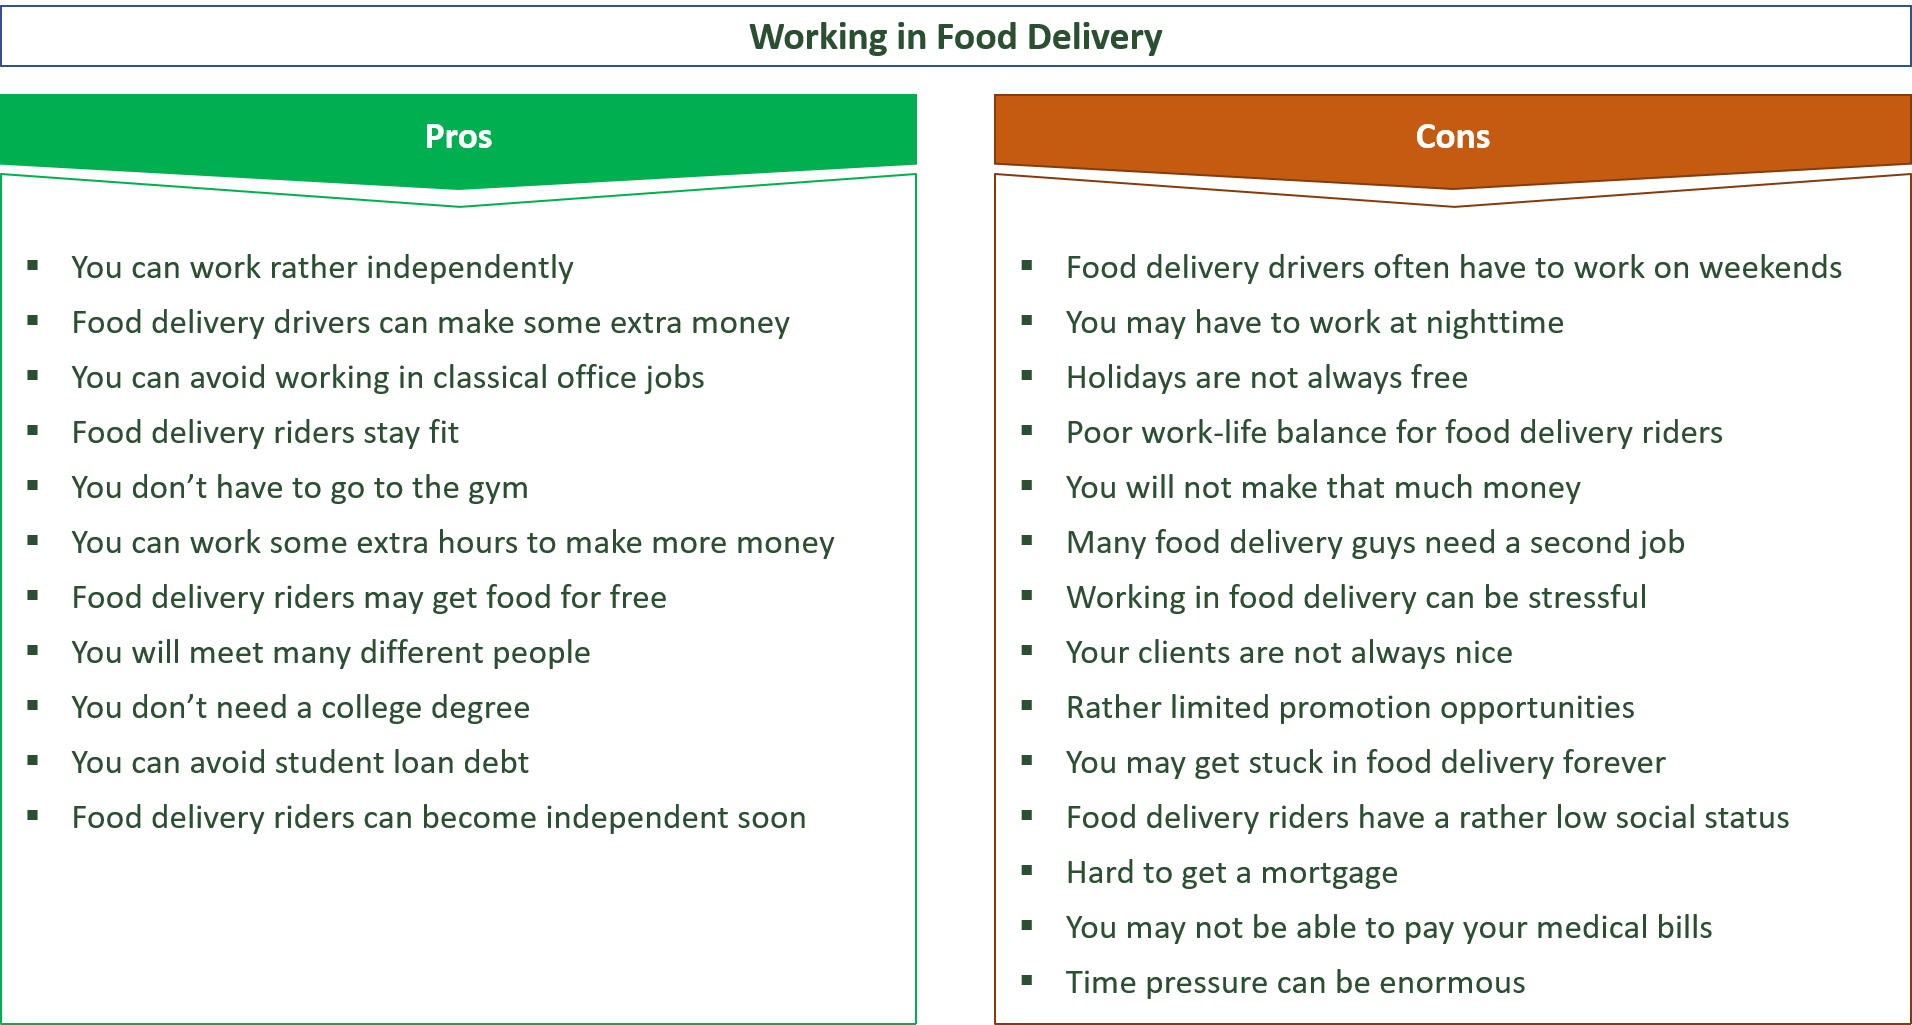 advantages and disadvantages of being a food delivery worker